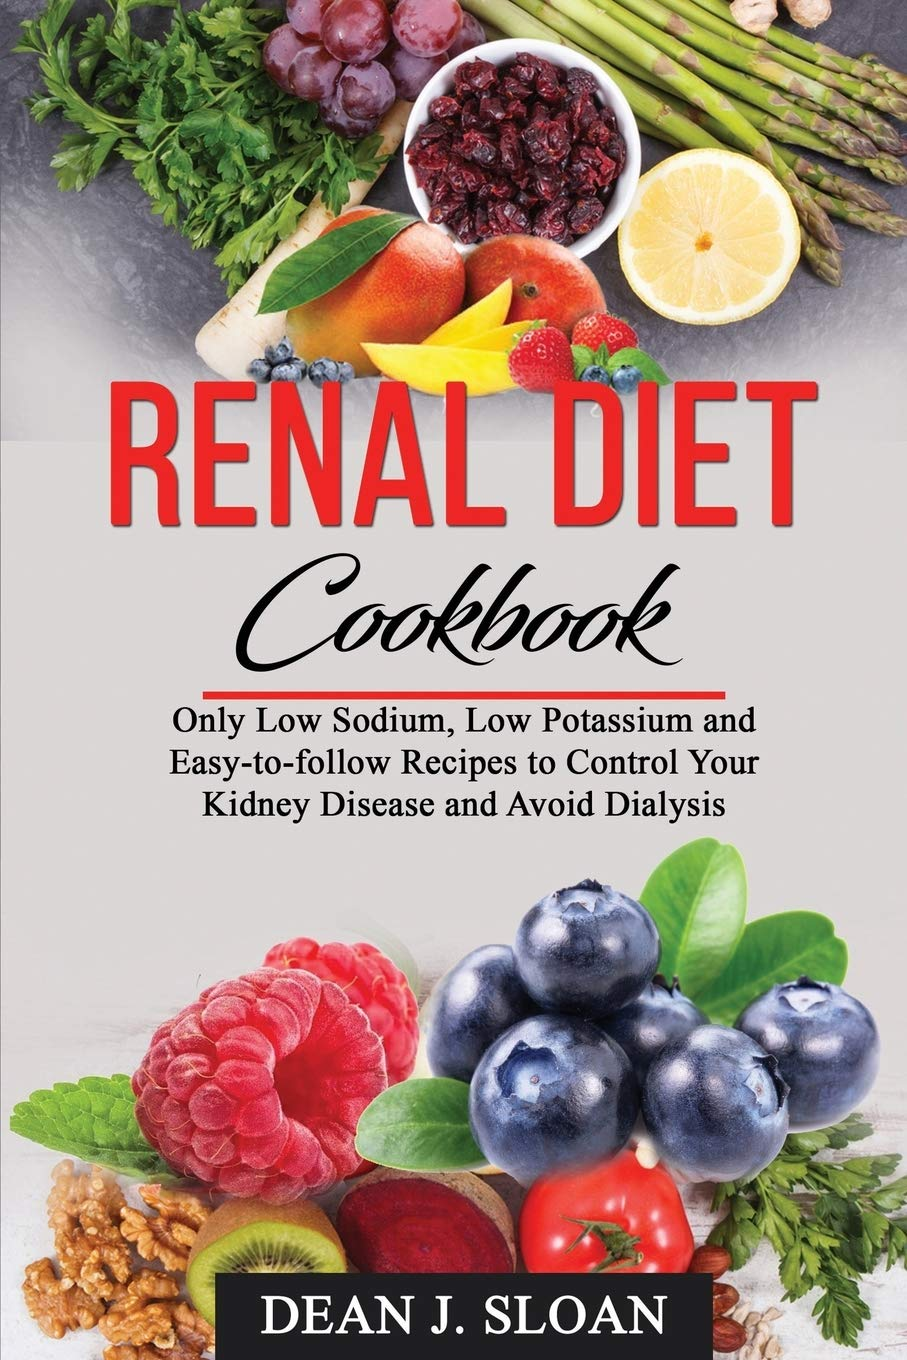 RENAL DIET COOKBOOK: Only Low Sodium, Low Potassium, and Easy-to-follow Recipes to Control Your Kidney Disease and Avoid Dialysis